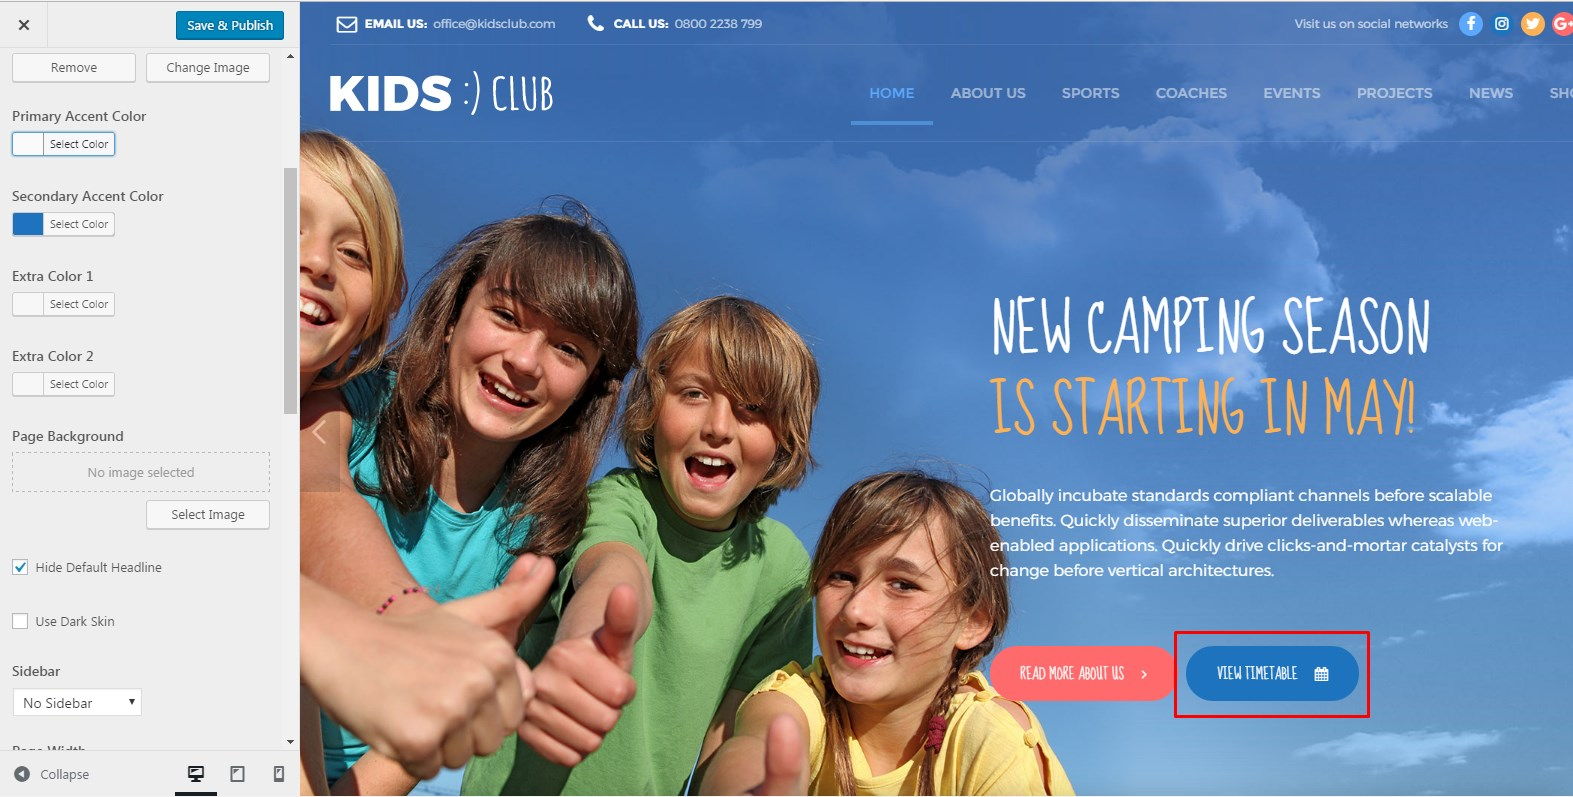 https://documentation.bold-themes.com/kids-club/wp-content/uploads/sites/11/2016/07/13.jpg